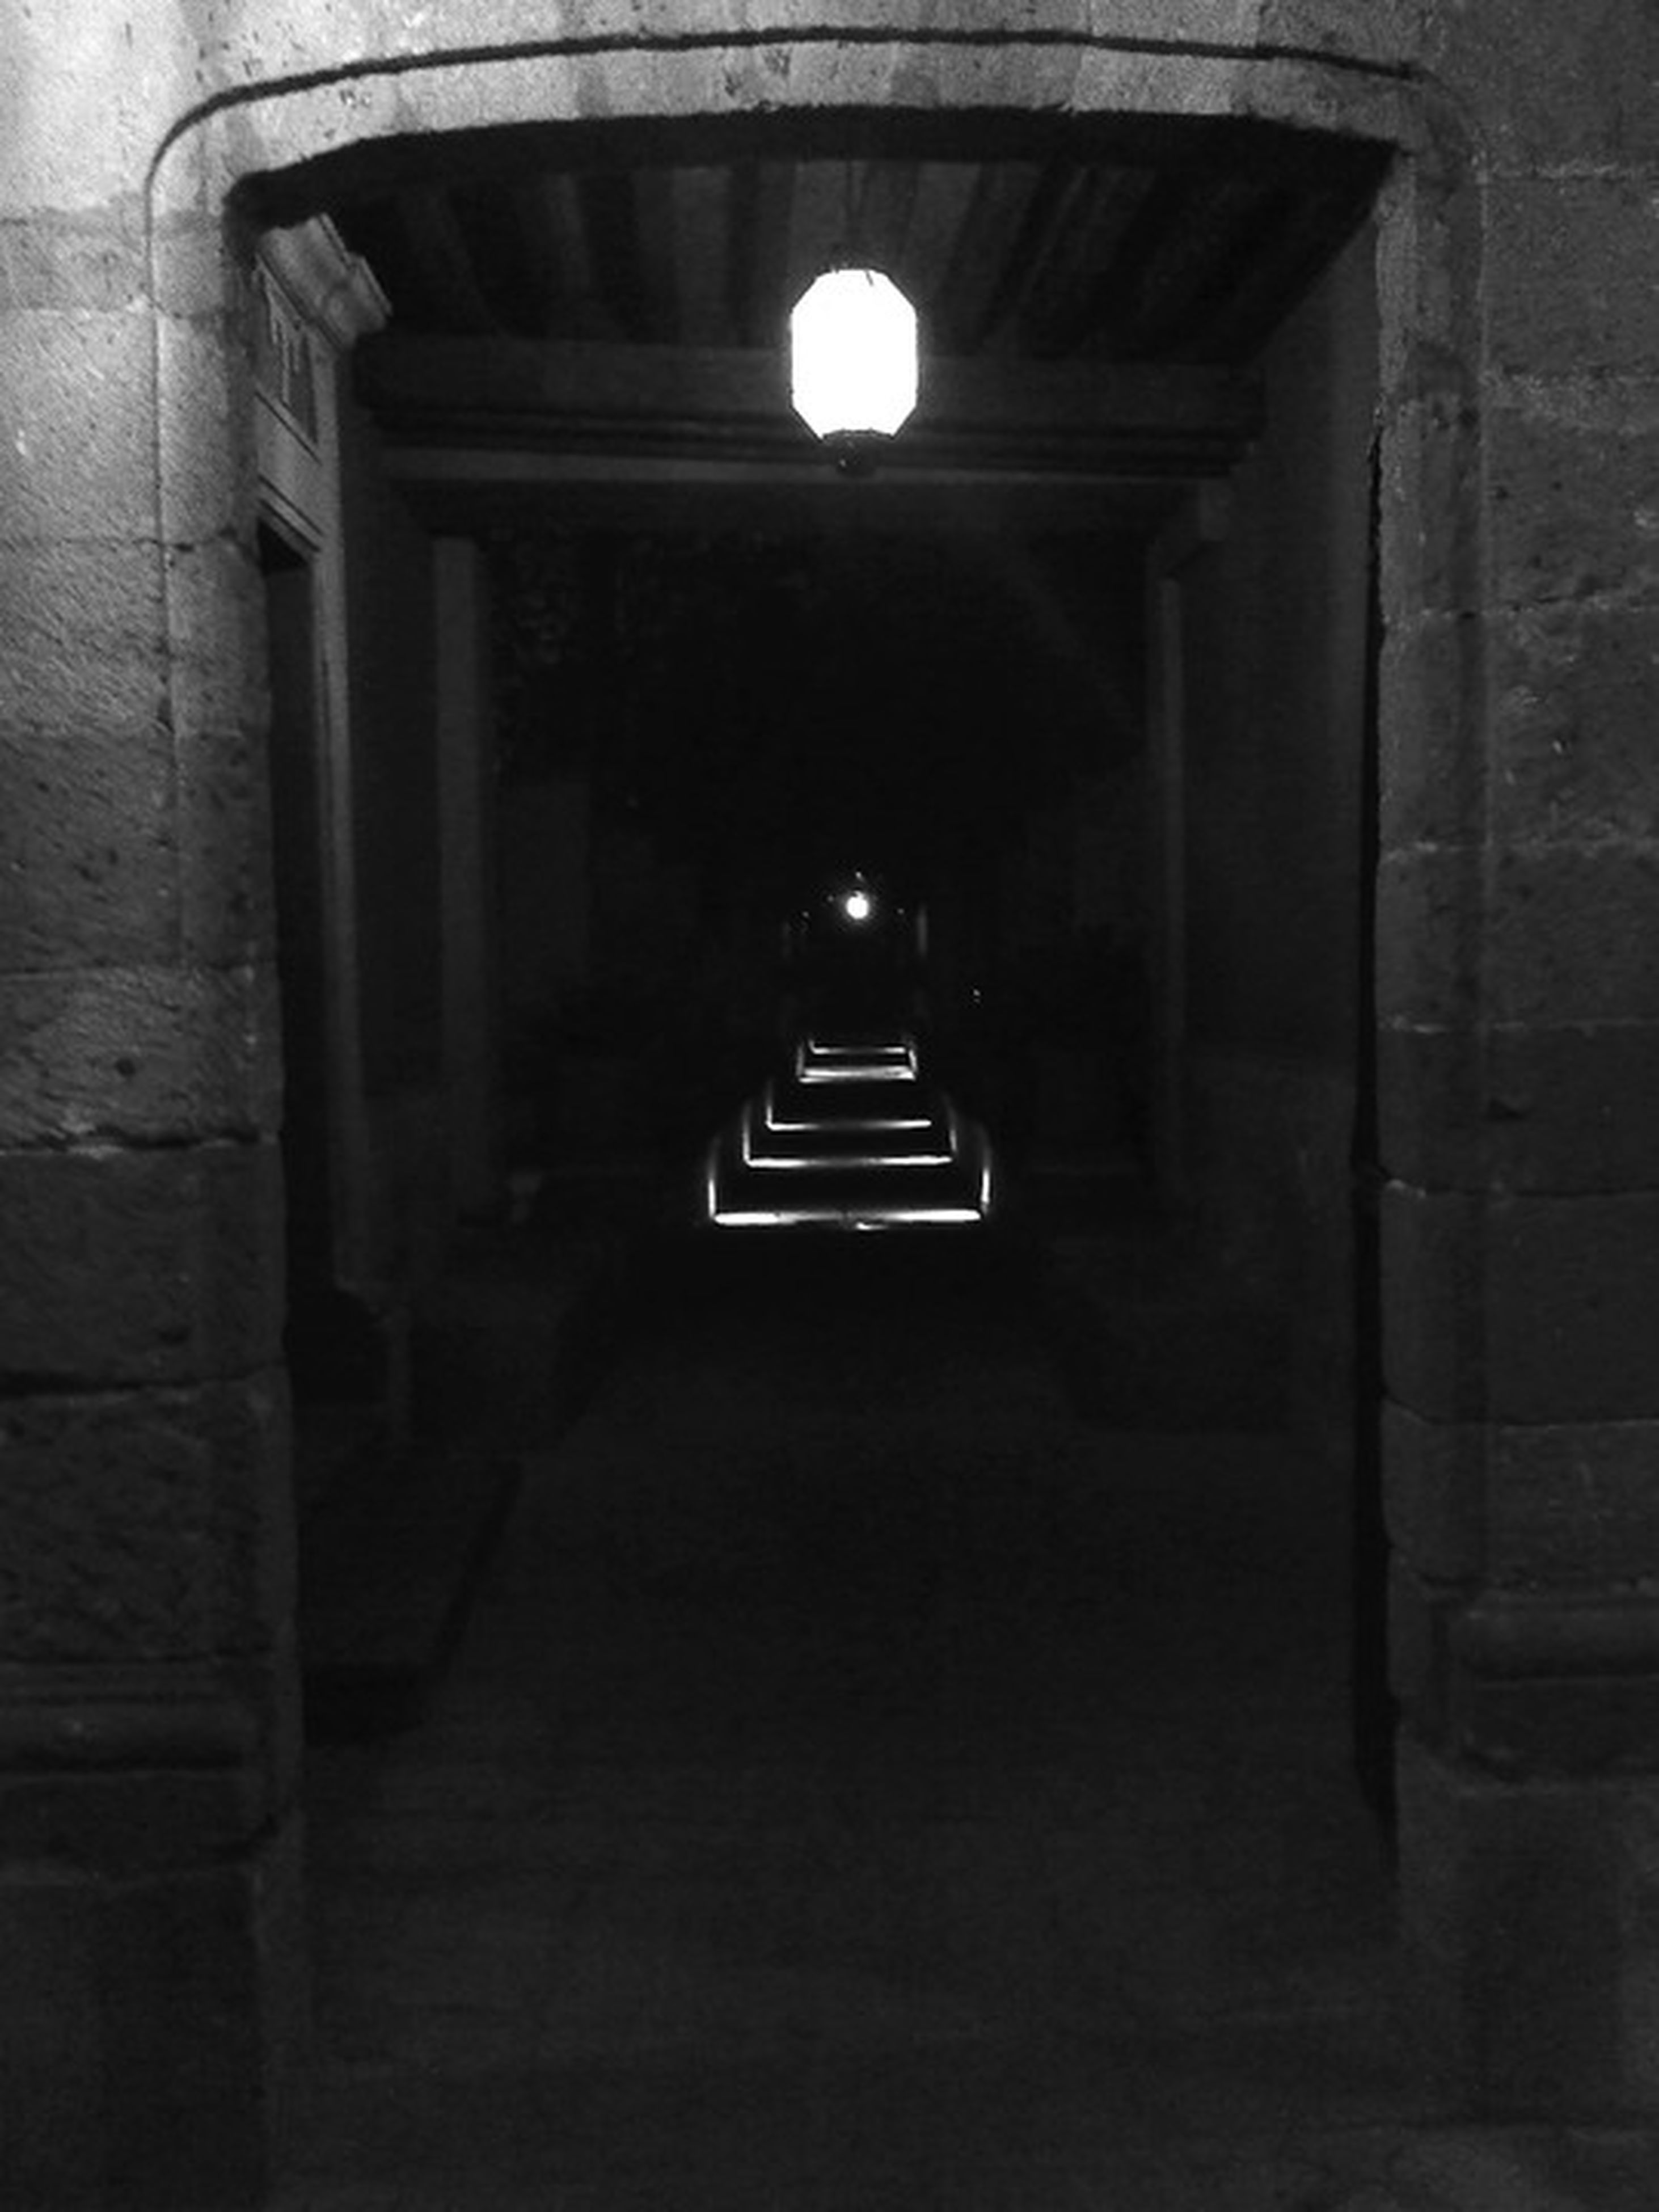 architecture, built structure, illuminated, the way forward, lighting equipment, transportation, building exterior, arch, indoors, diminishing perspective, night, street light, building, empty, vanishing point, street, corridor, tunnel, no people, absence